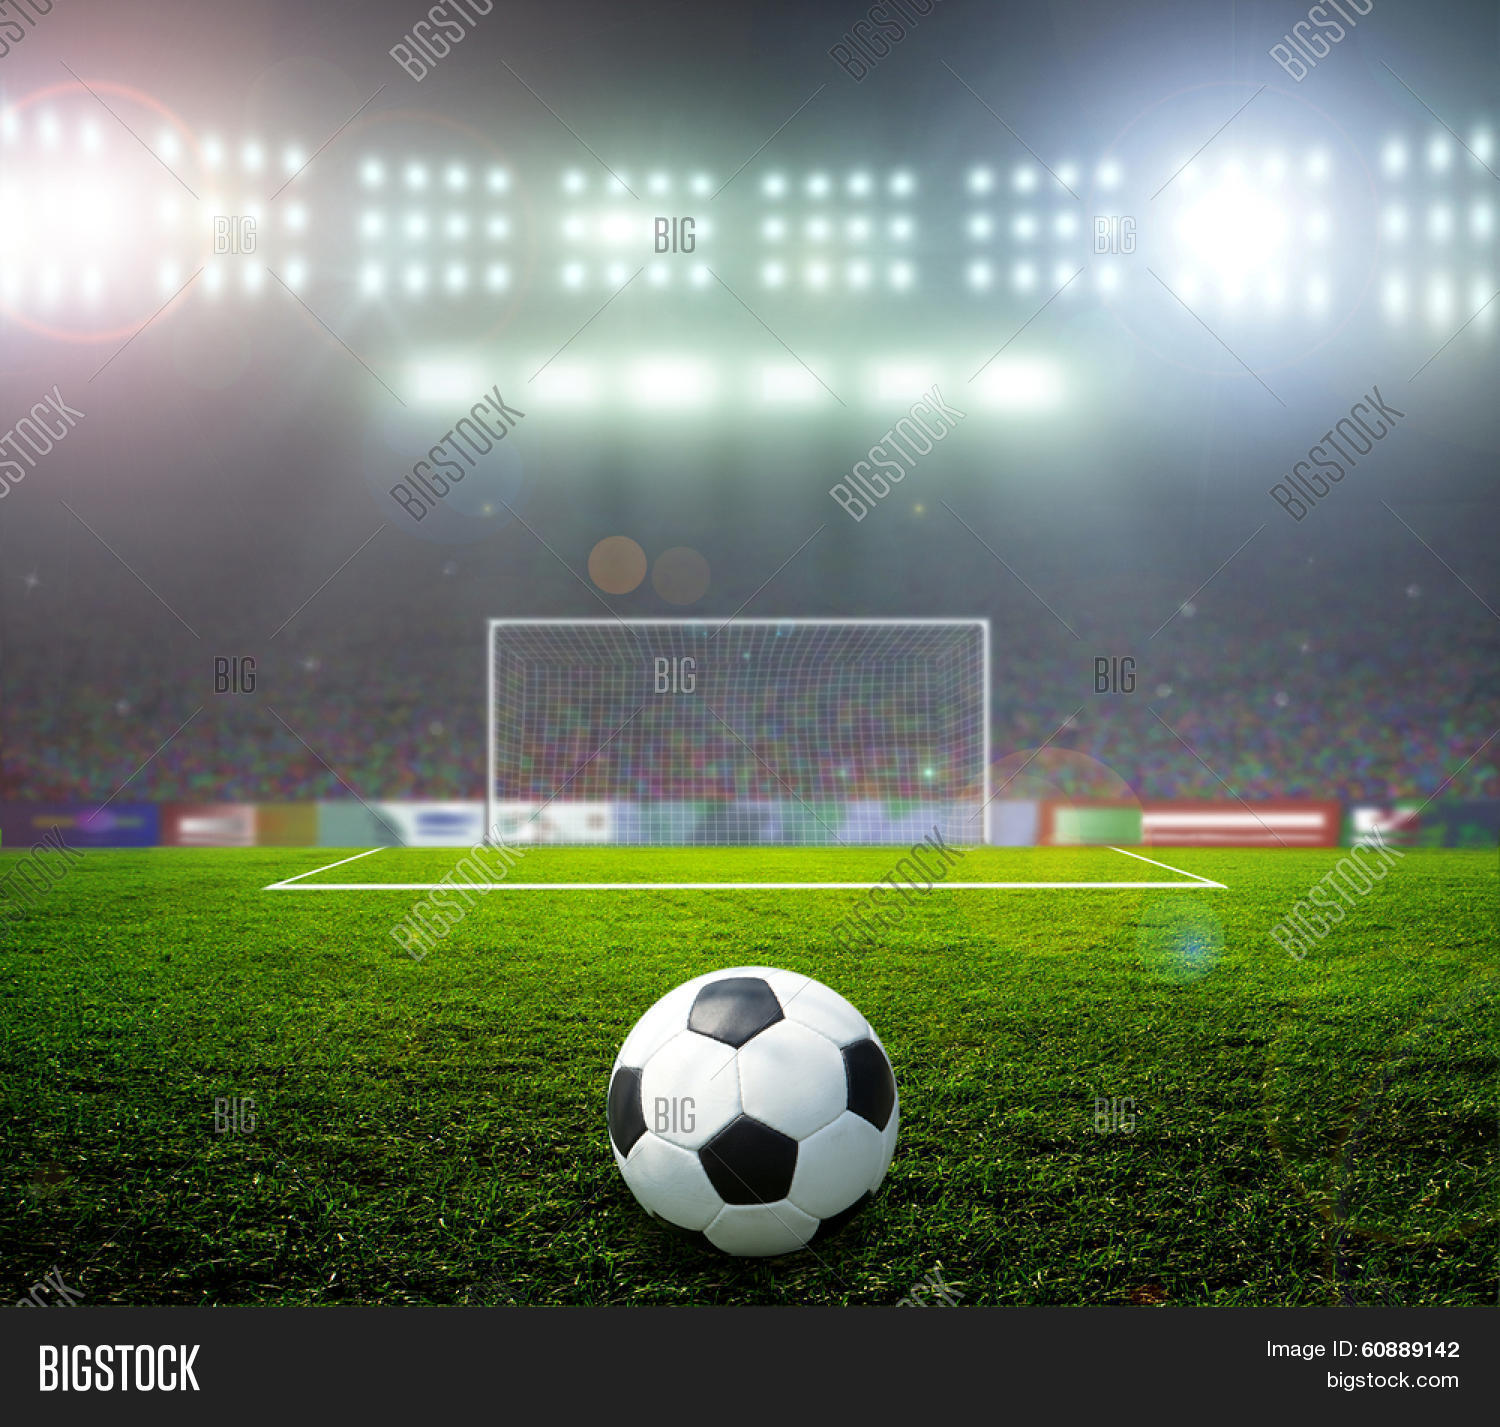 On Stadium. Abstract Football Image & Photo